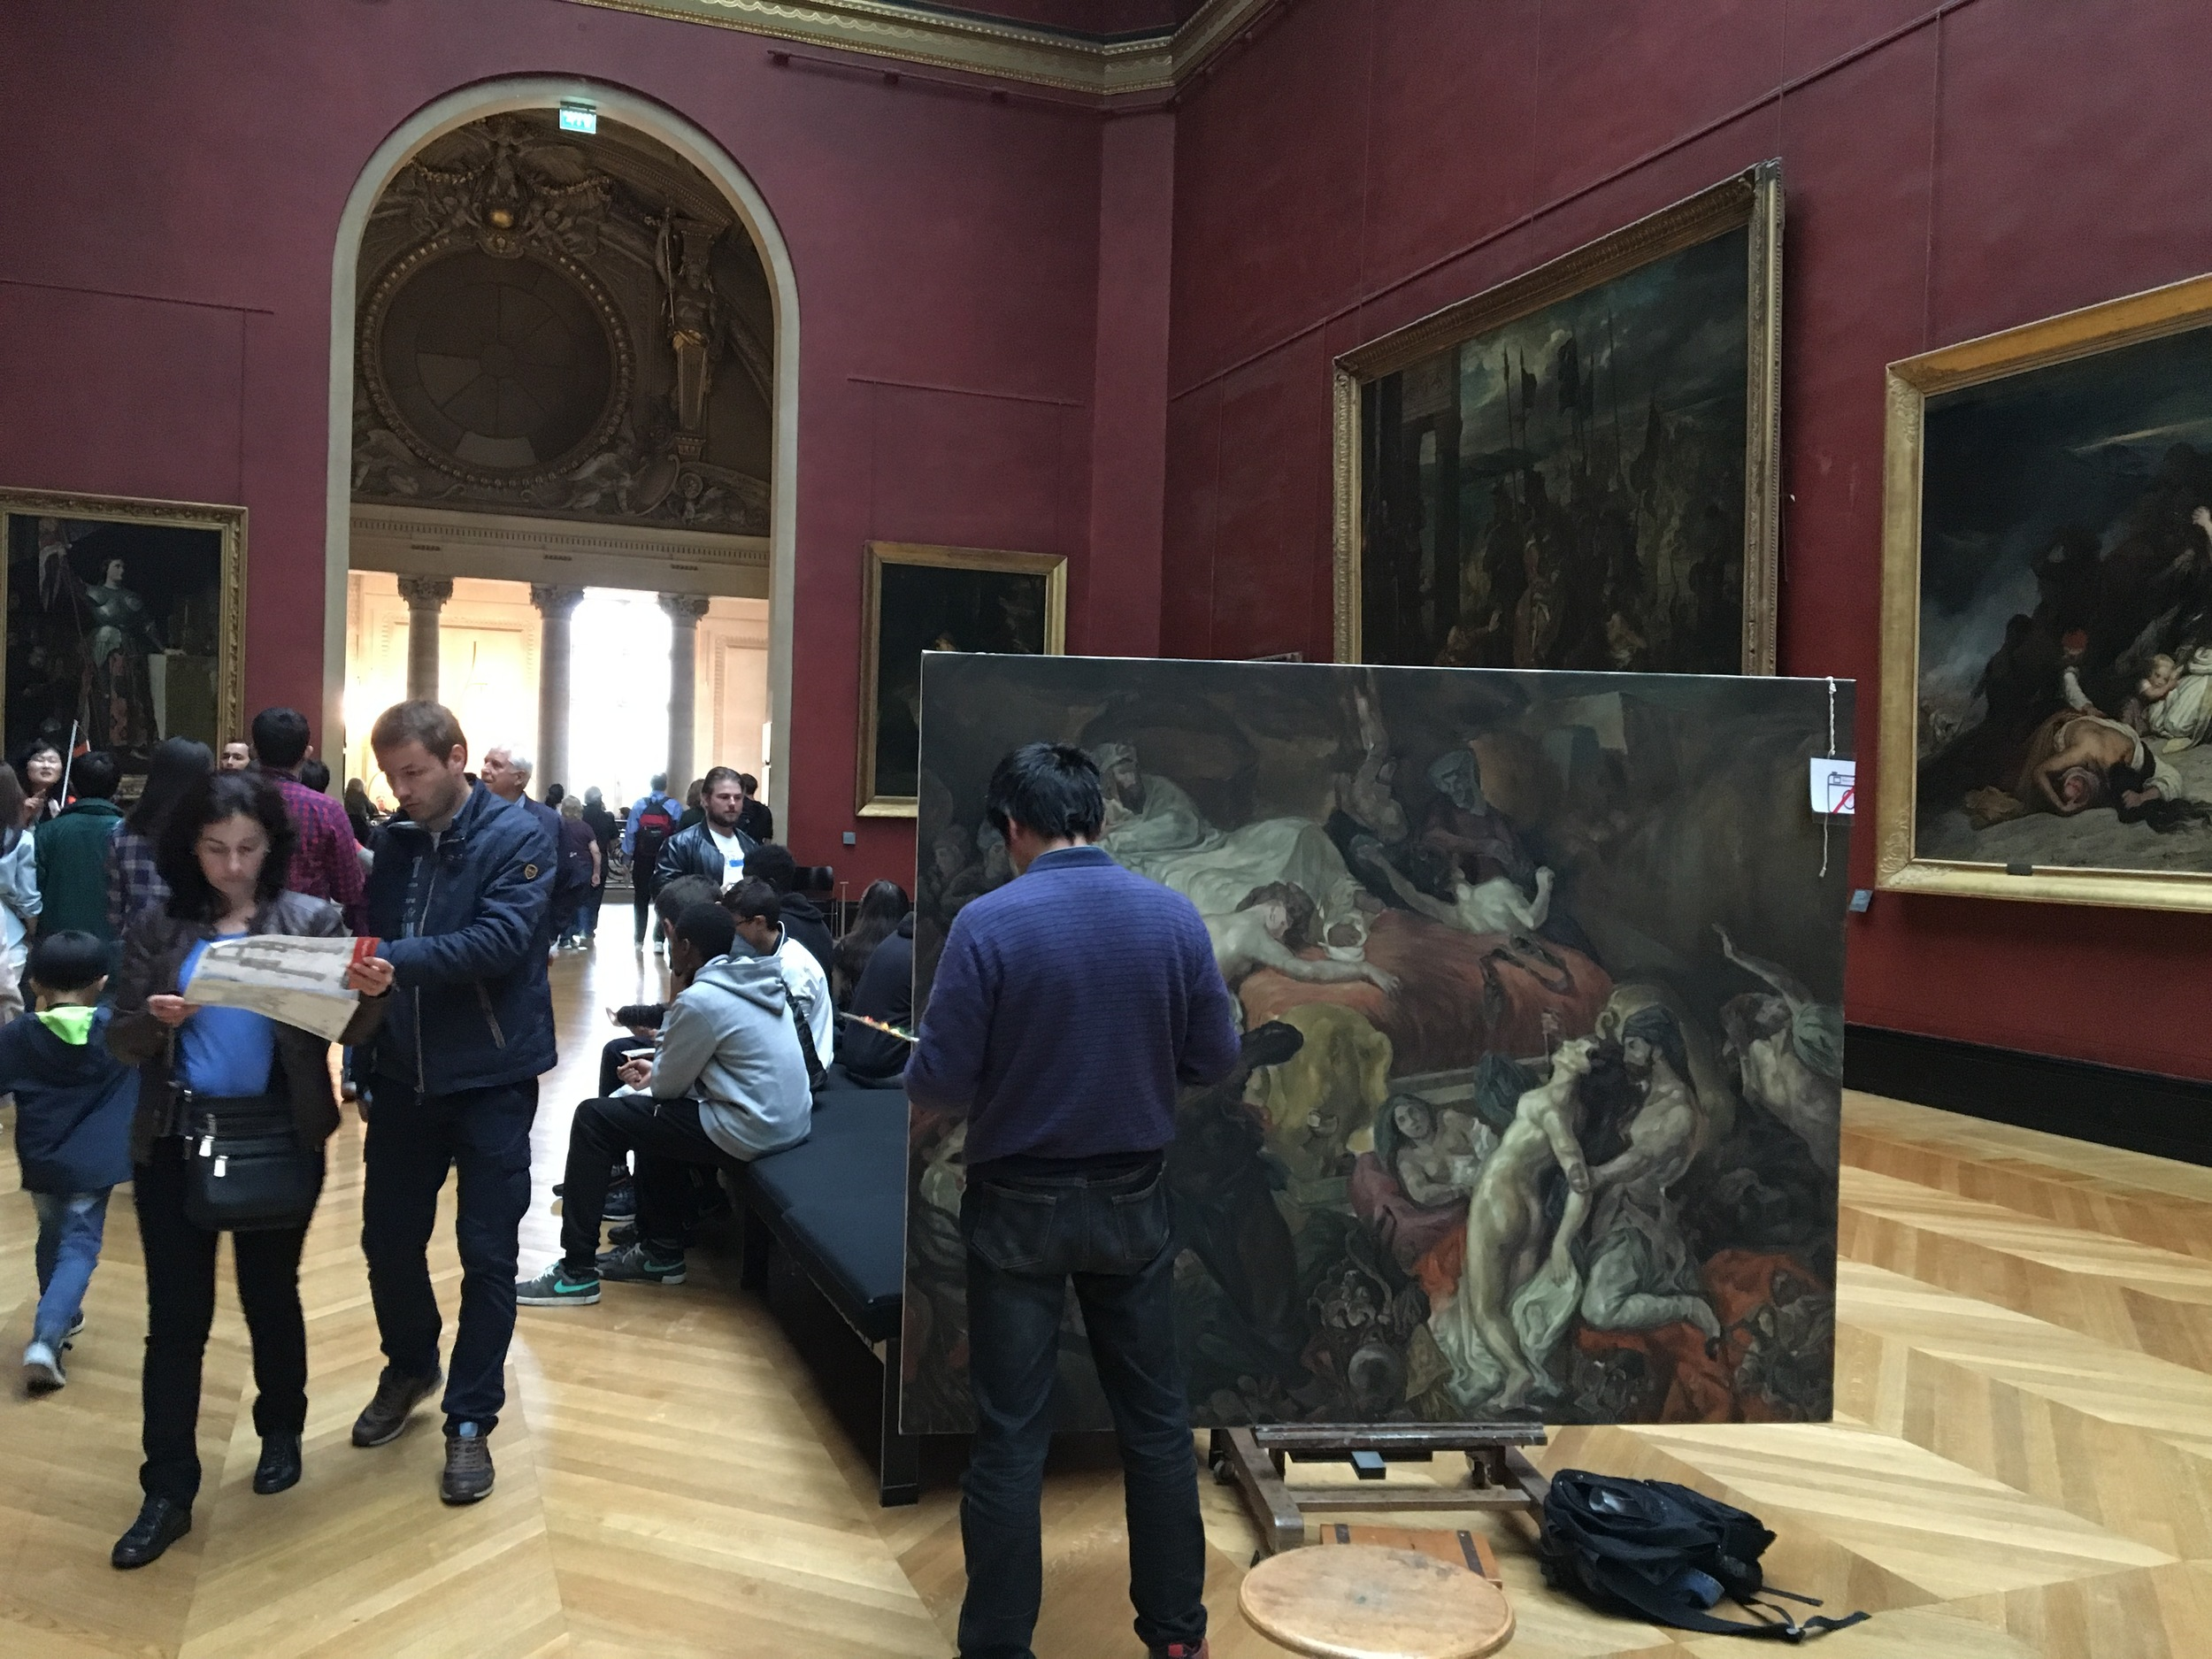 After the revolution, the Louvre became a place for artists to live and work, and the museum still allows artists to get a permit to work in the galleries.